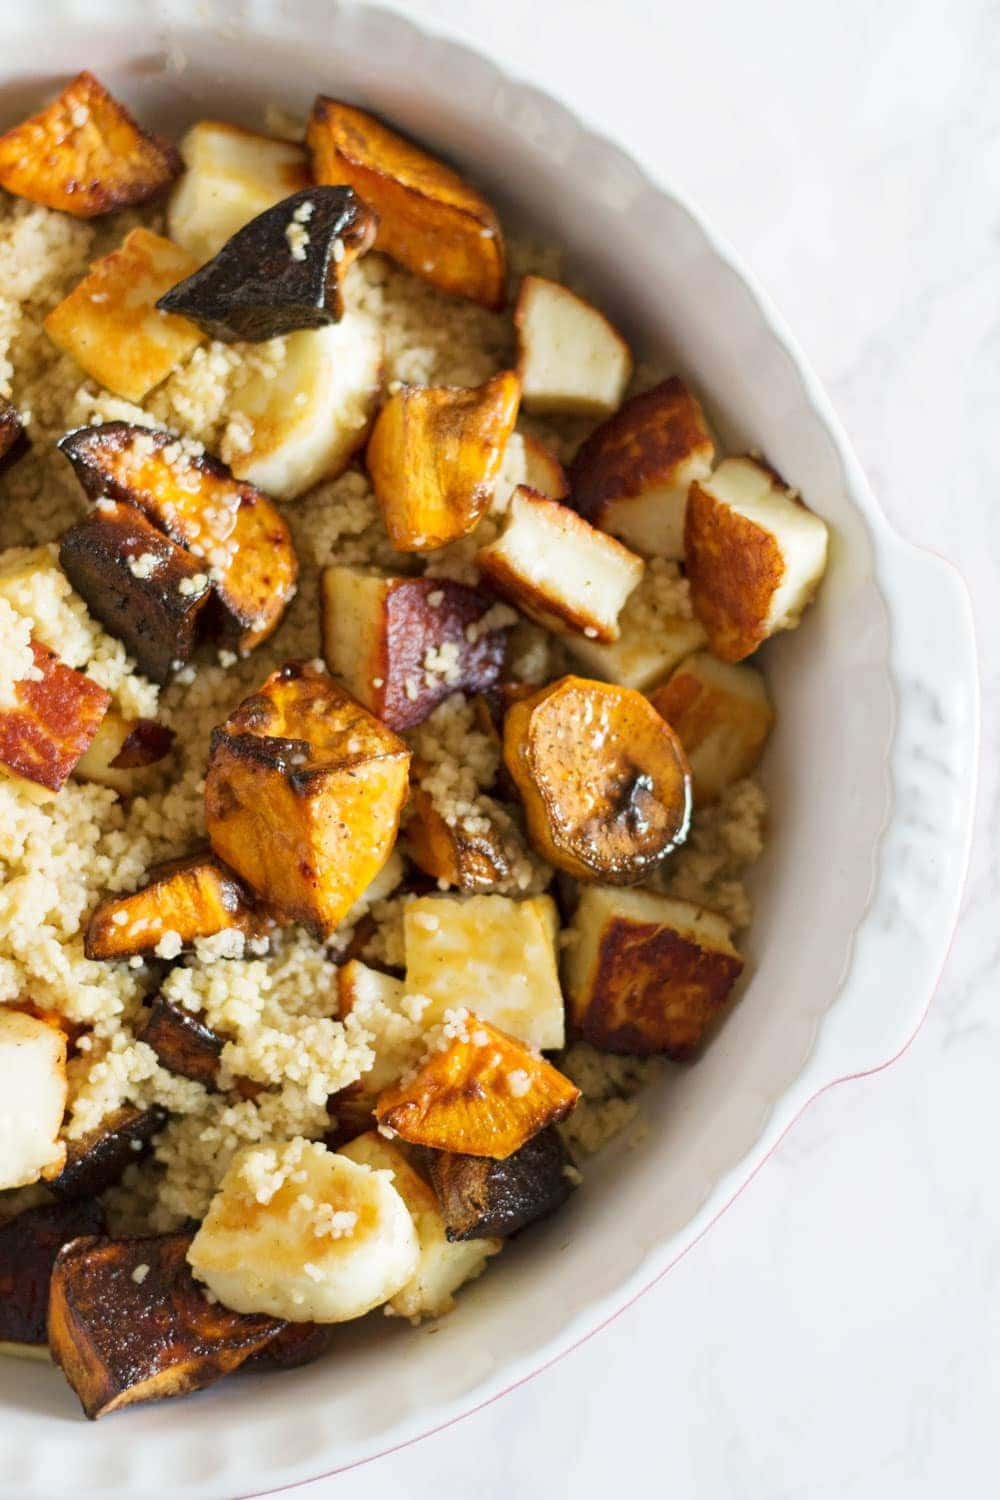 This vibrant halloumi, sweet potato and bulgur wheat salad is full of saltiness from the halloumi and olives and creamy sweetness from the sweet potato.